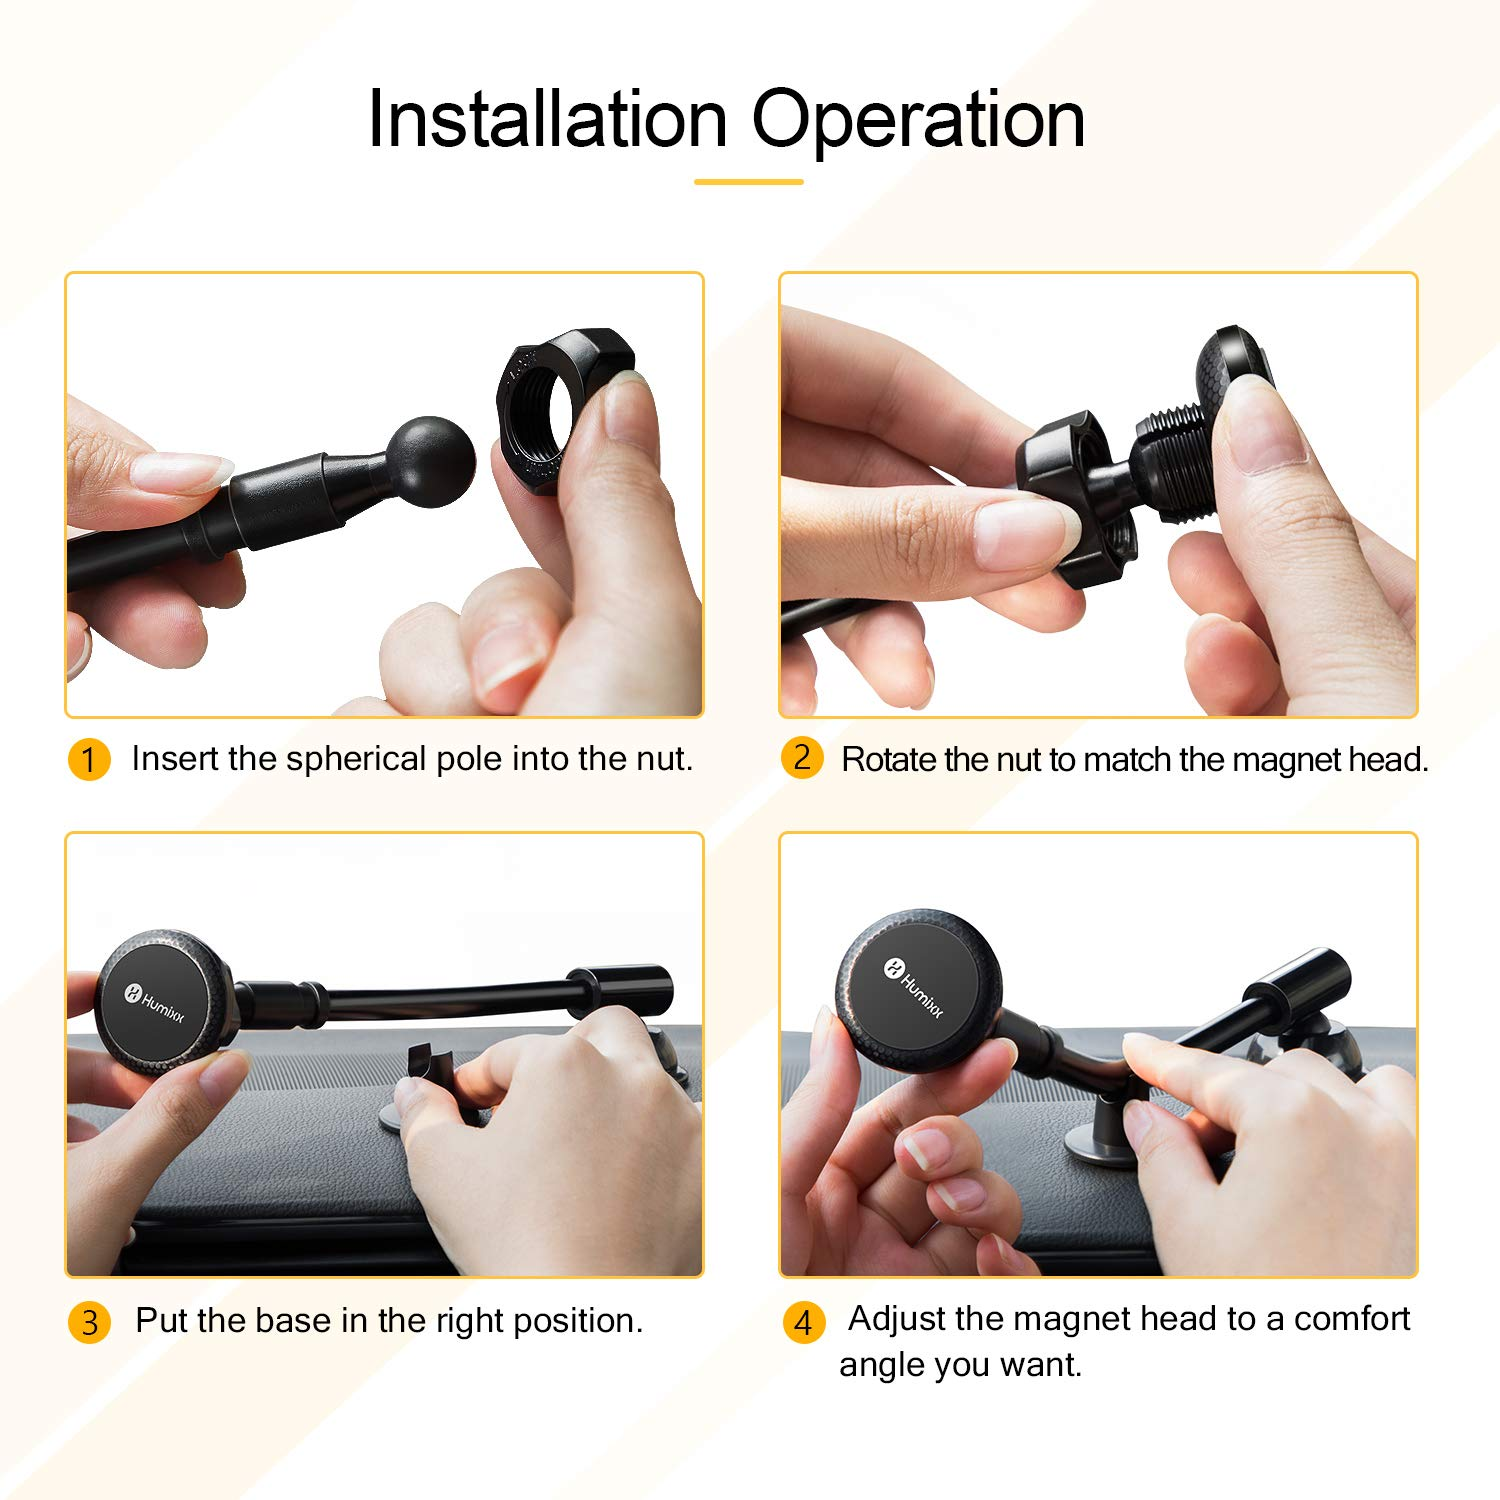 Humixx Long Arm Universal Magnetic Cradle Windshield Dashboard Cell Phone Mount Holder with 4 Metal Plates Car Phone Mount Super Magnetic Phone Car Holder Long Arm for Any Smartphone under 6.5 Inche HX-PH03